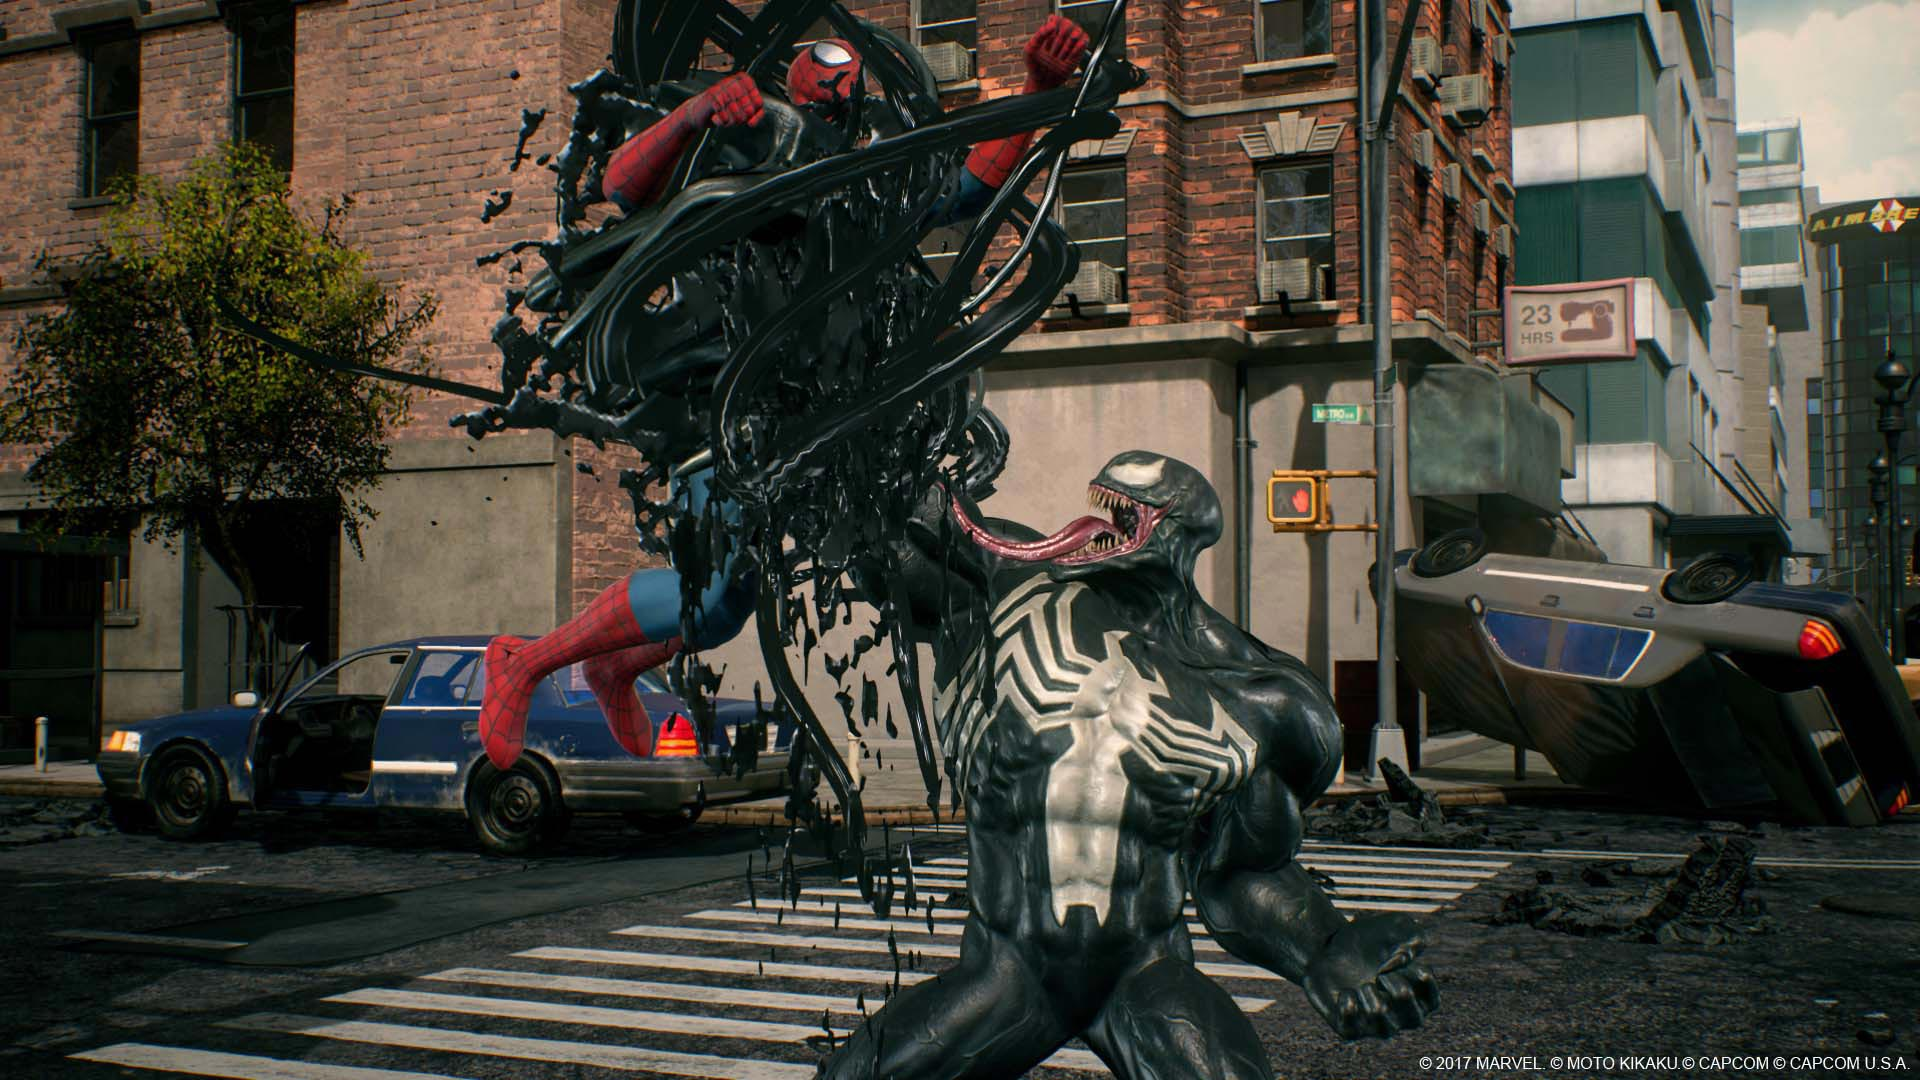 Venom, Black Widow, and Winter Solider in Marvel vs. Capcom: Infinite screenshots 11 out of 13 image gallery